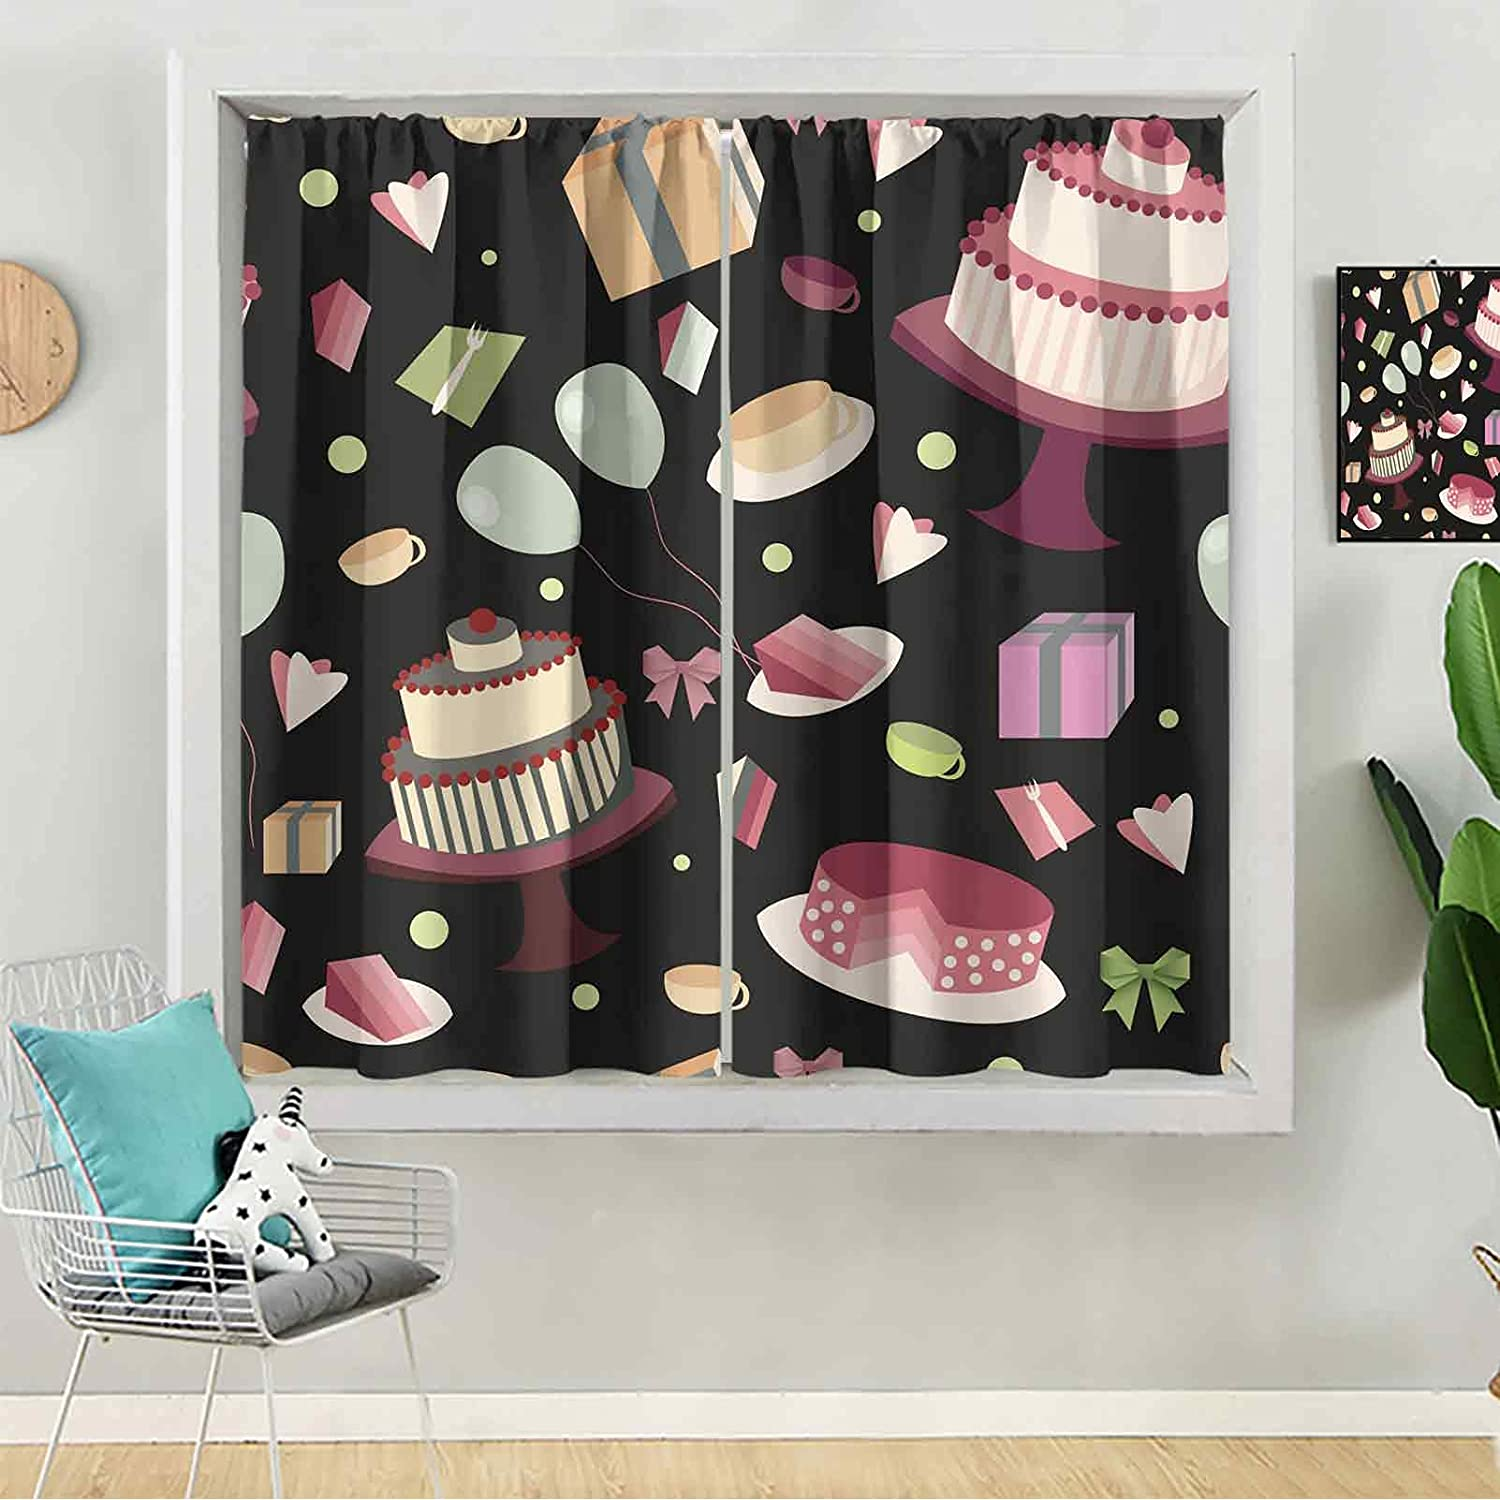 Blackout Curtains Festive Seamless Classic Pattern Popularity Black a Backgroun on